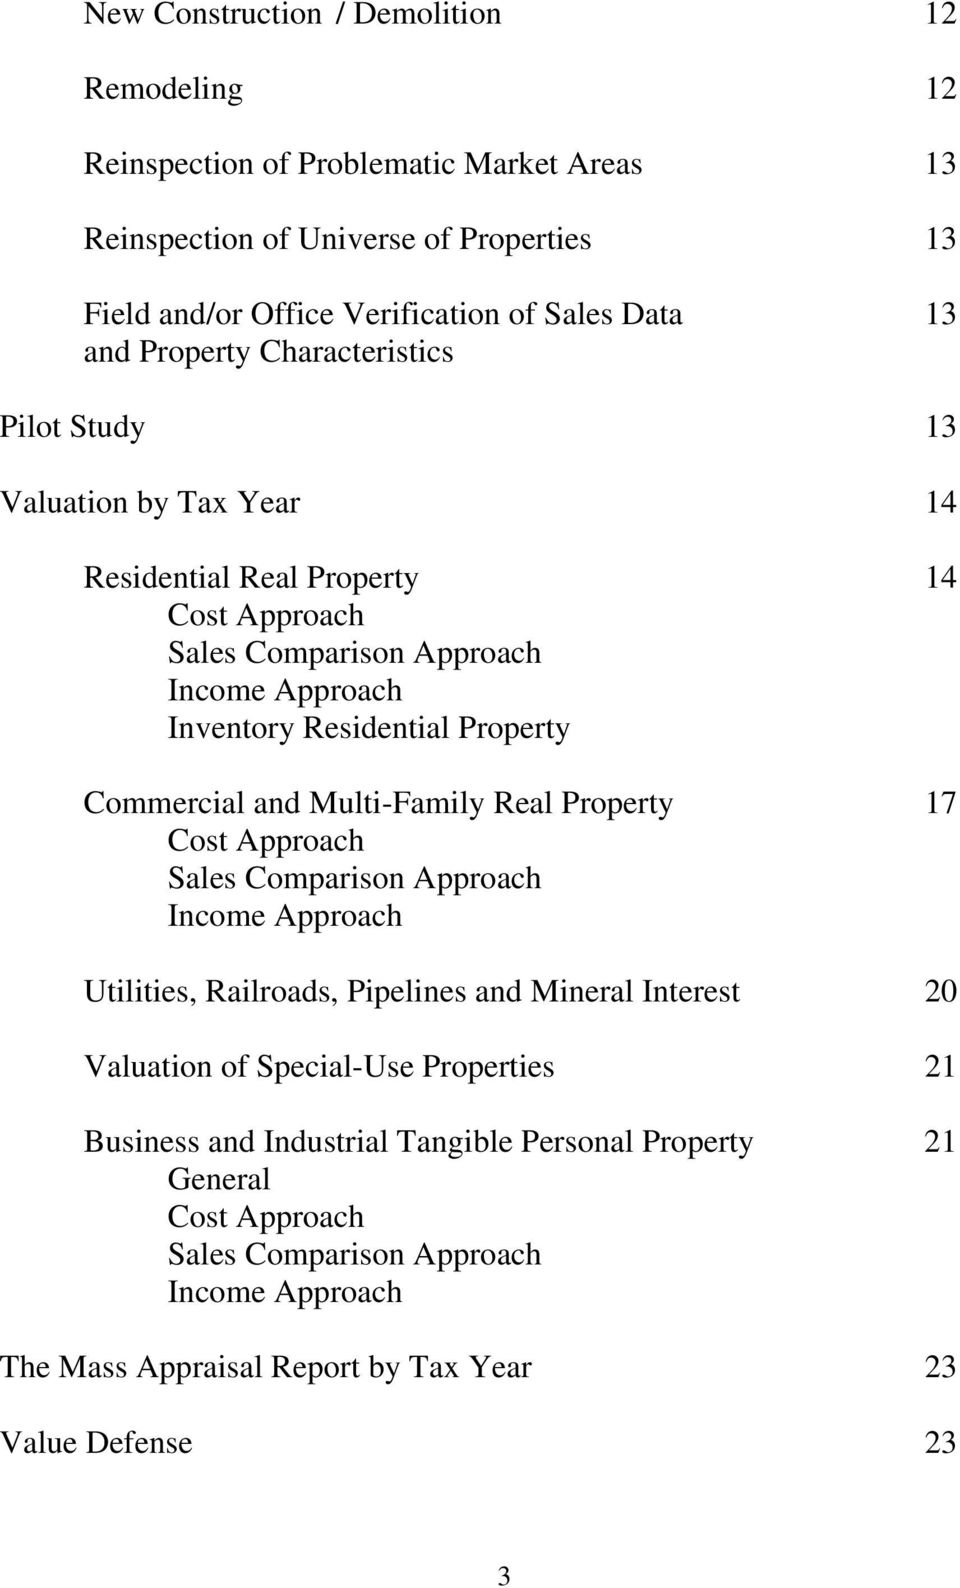 Commercial and Multi-Family Real Property 17 Cost Approach Sales Comparison Approach Income Approach Utilities, Railroads, Pipelines and Mineral Interest 20 Valuation of Special-Use